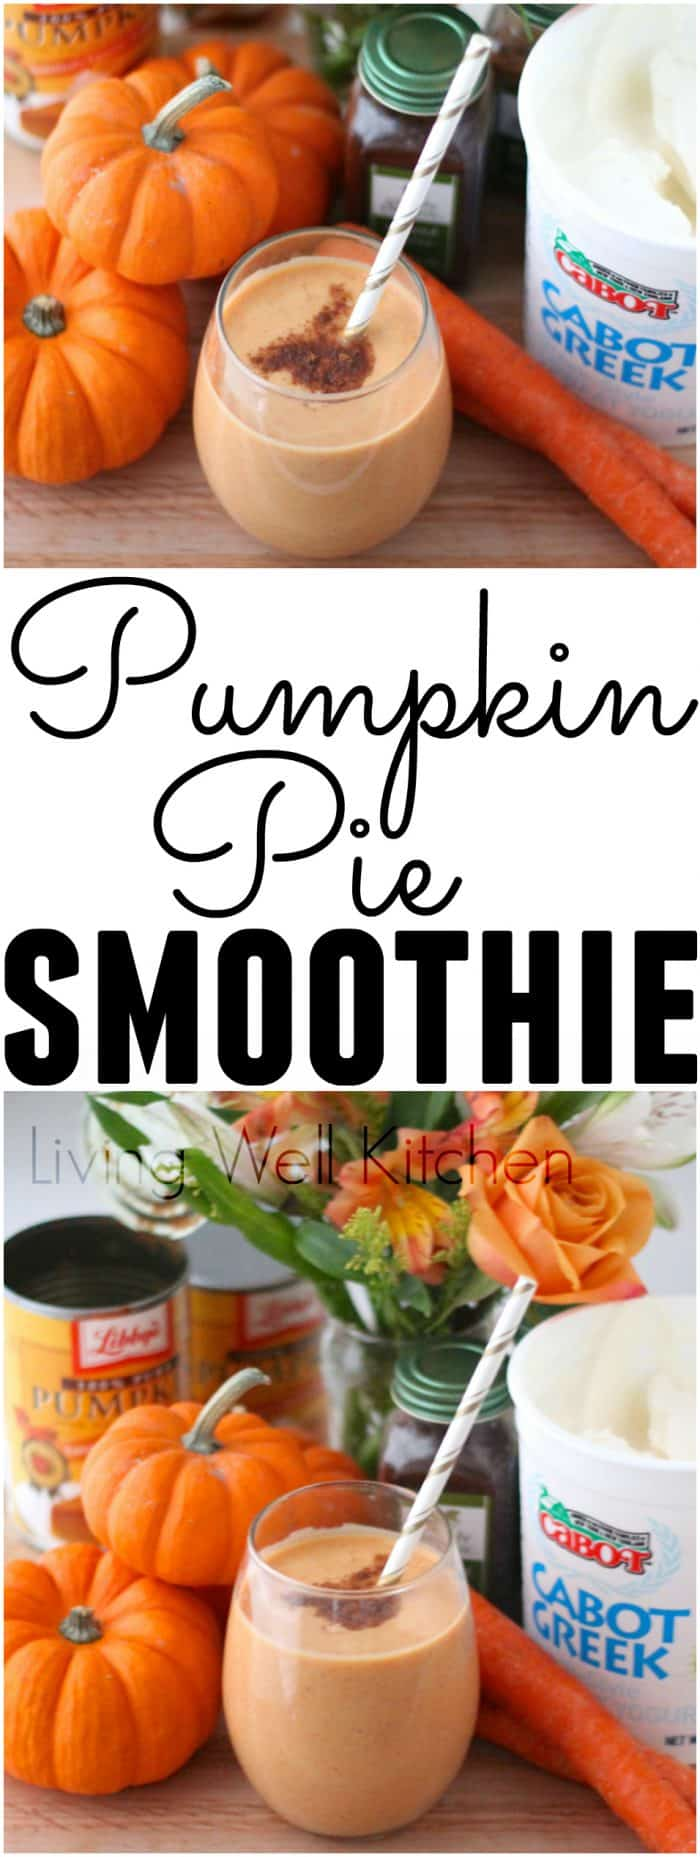 Try this Festive Pumpkin Pie Smoothie recipe from @memeinge with filling protein and fiber. This smoothie is a velvety, heavenly, fabulous post-run treat or healthy snack that has a nice amount of protein and packs in the produce with pumpkin, carrots & bananas!